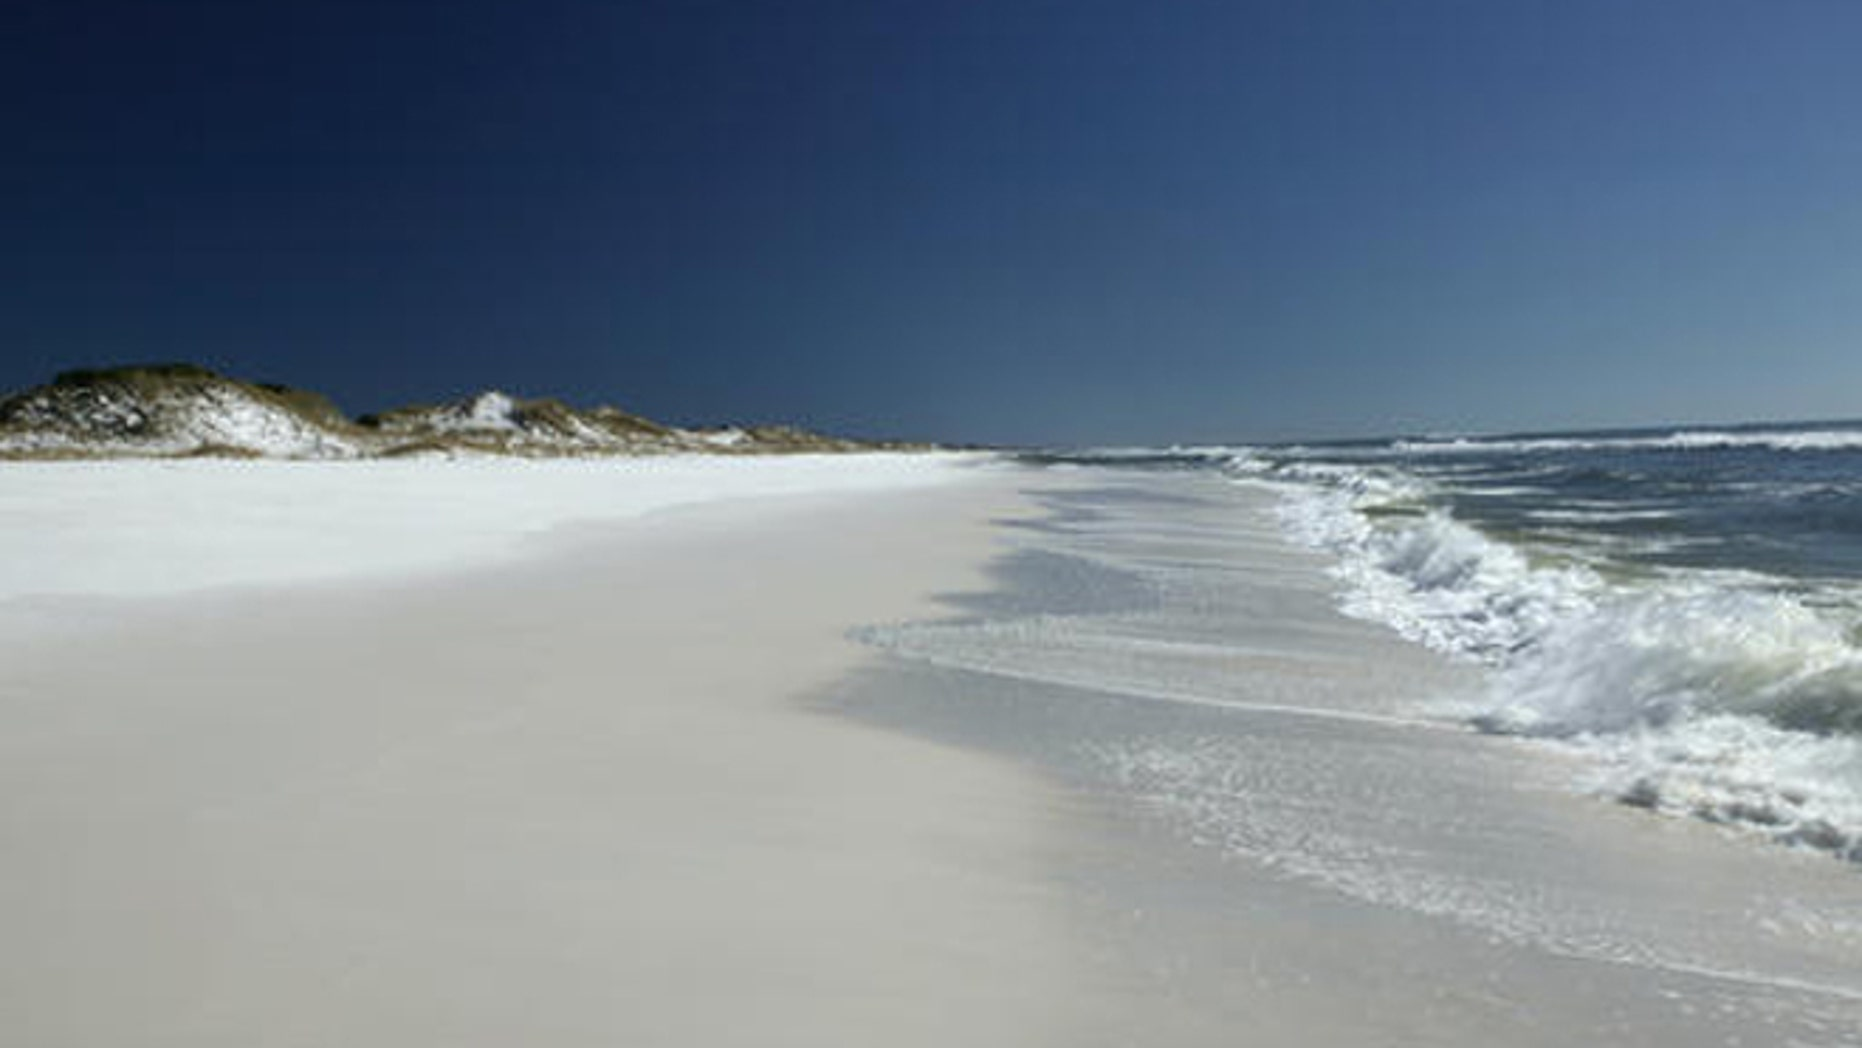 This undated photo provided by Visit South Walton shows Grayton Beach on Florida's Panhandle on the Gulf Coast. Grayton Beach State Park is No. 6 on the list of top beaches for the summer of 2016 as compiled by Stephen Leatherman, also known as Dr. Beach, a professor at Florida International University. (David Bailey Photography/Visit South Walton via AP)